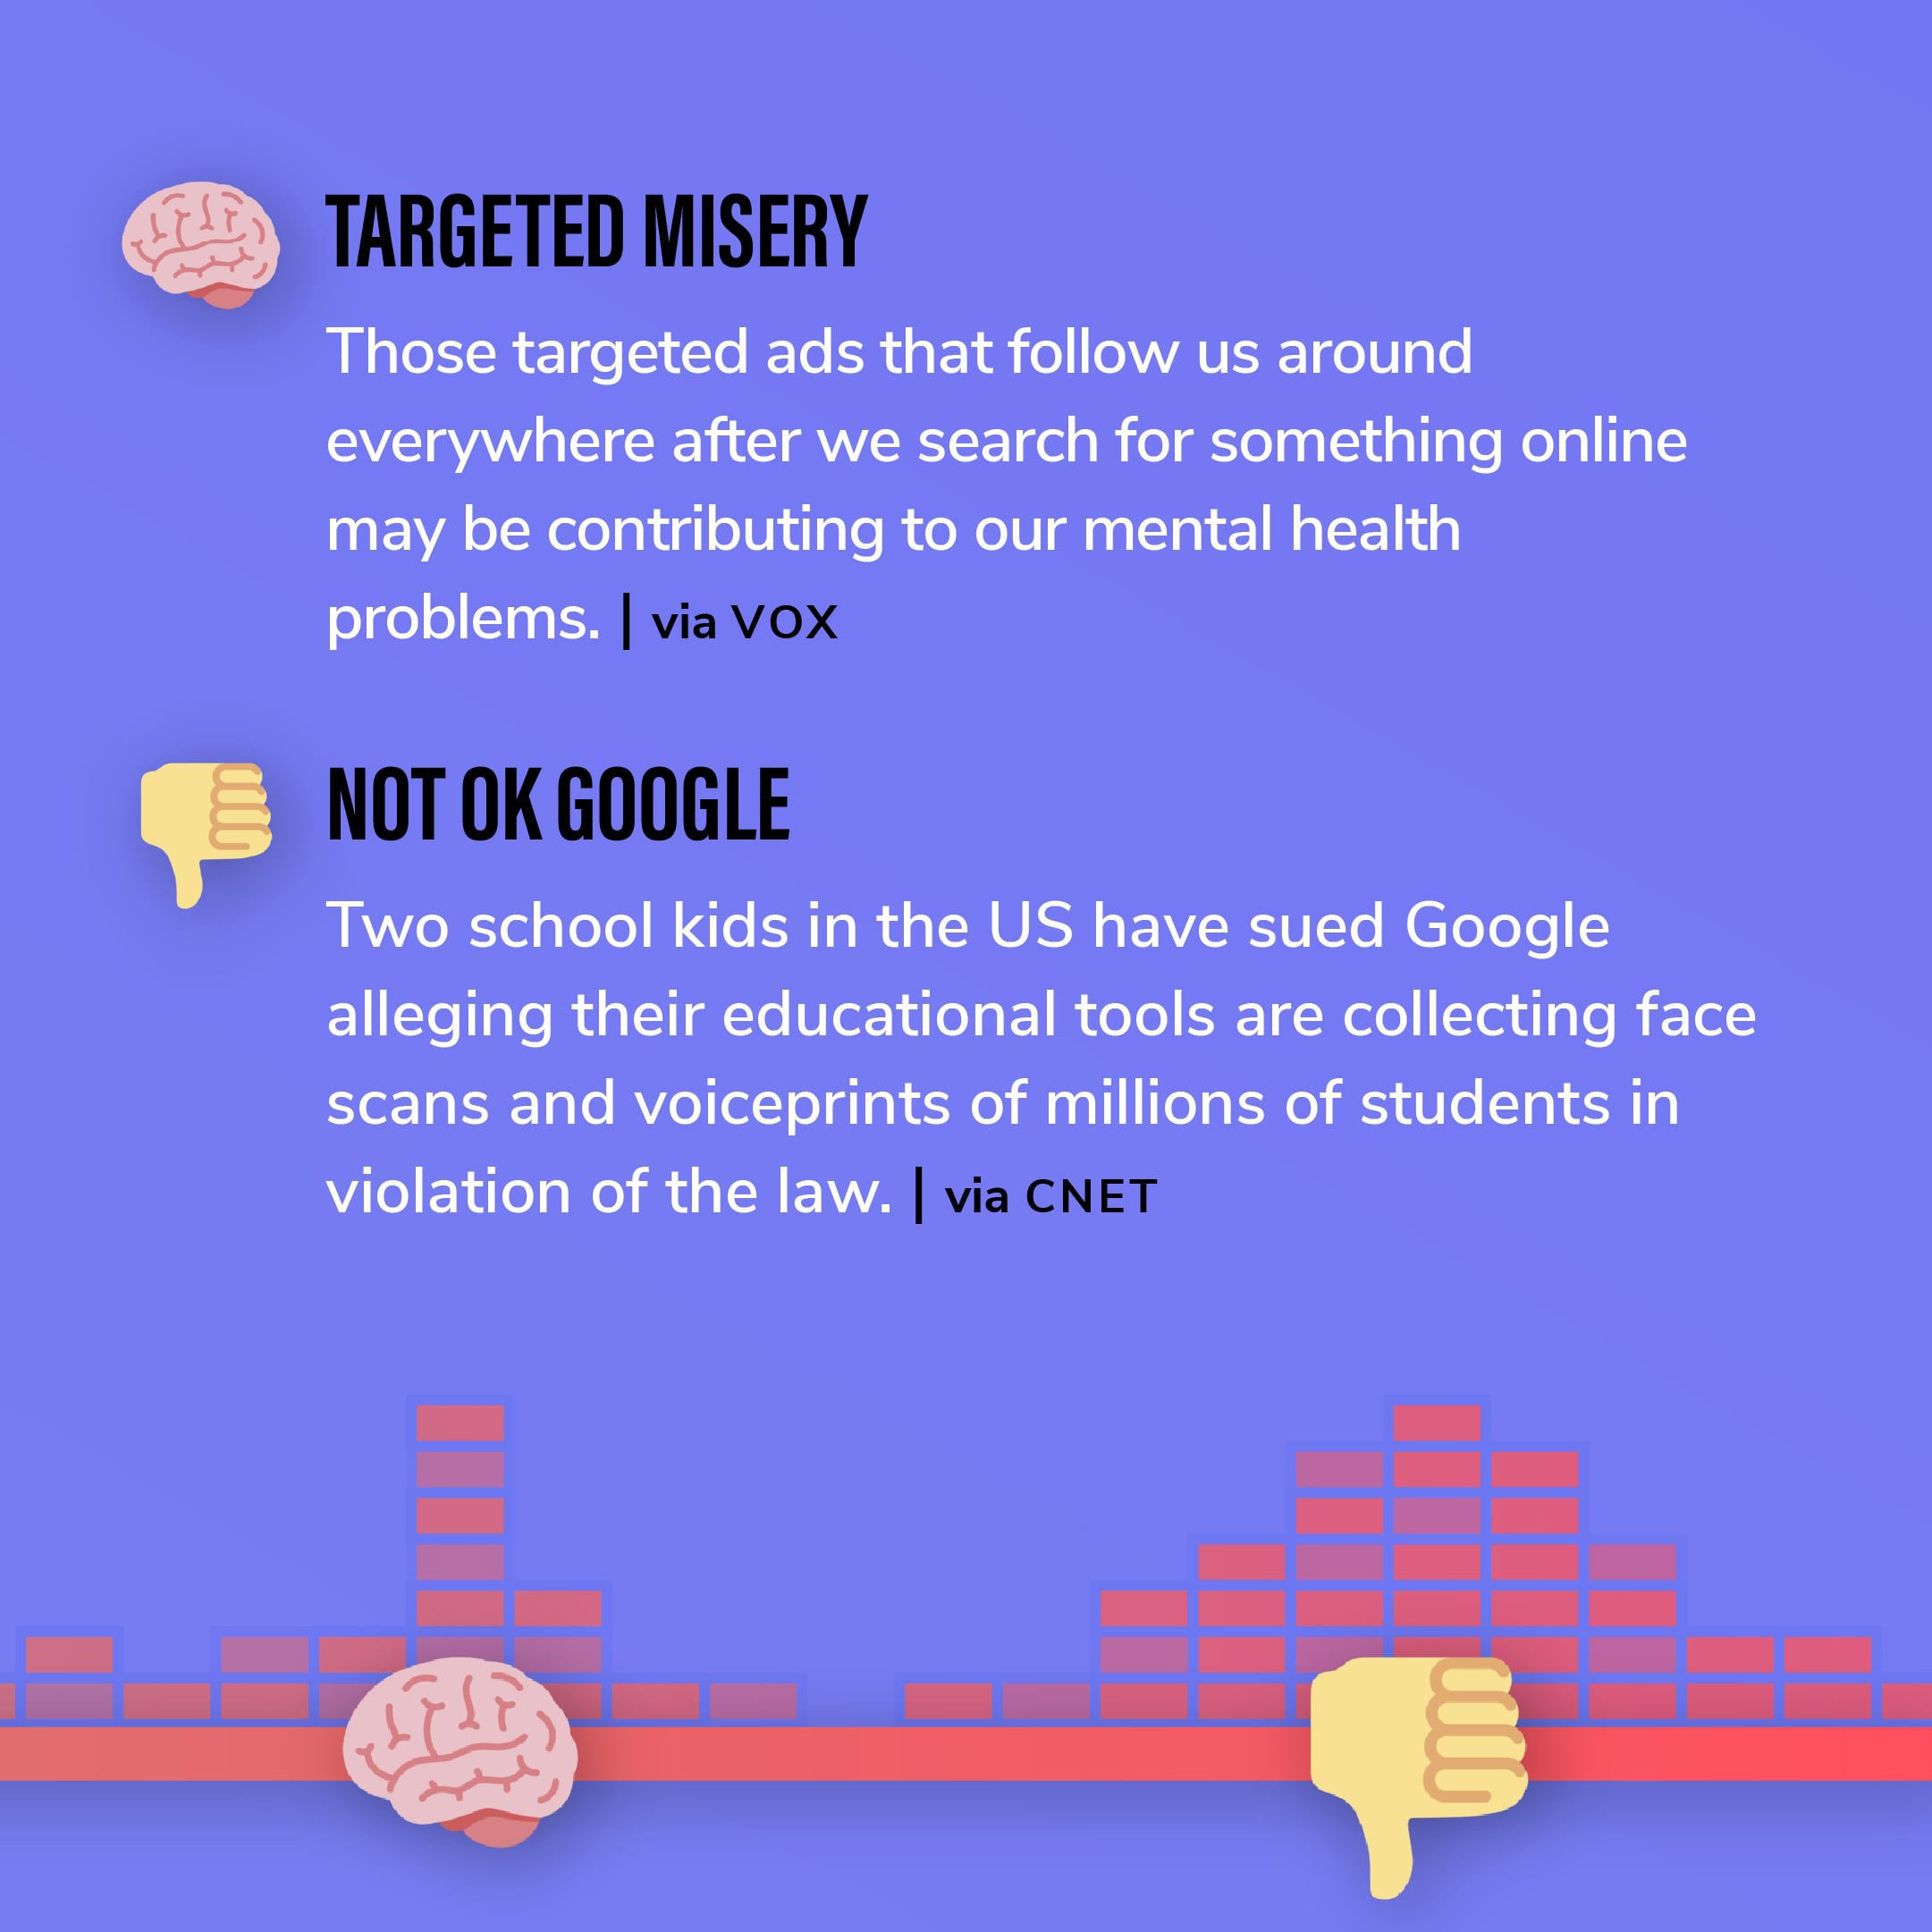 Story 11: Those targeted ads that follow us around everywhere after we search for something online may be contributing to our mental health problems. Story 12: Two school kids in the US have sued Google alleging their educational tools are collecting face scans and voiceprints of millions of students in violation of the law.